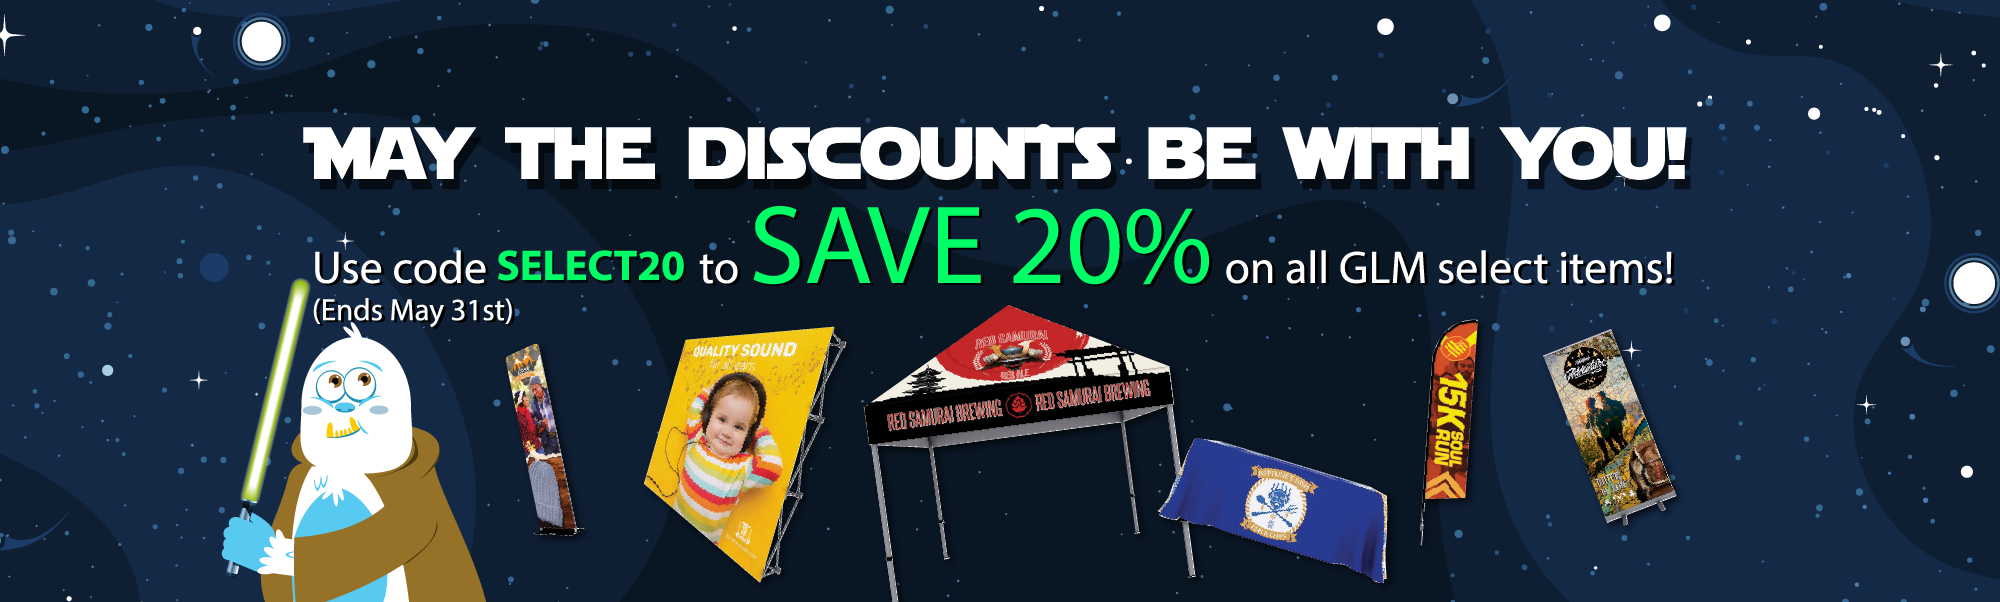 may-the-discounts-ad.png